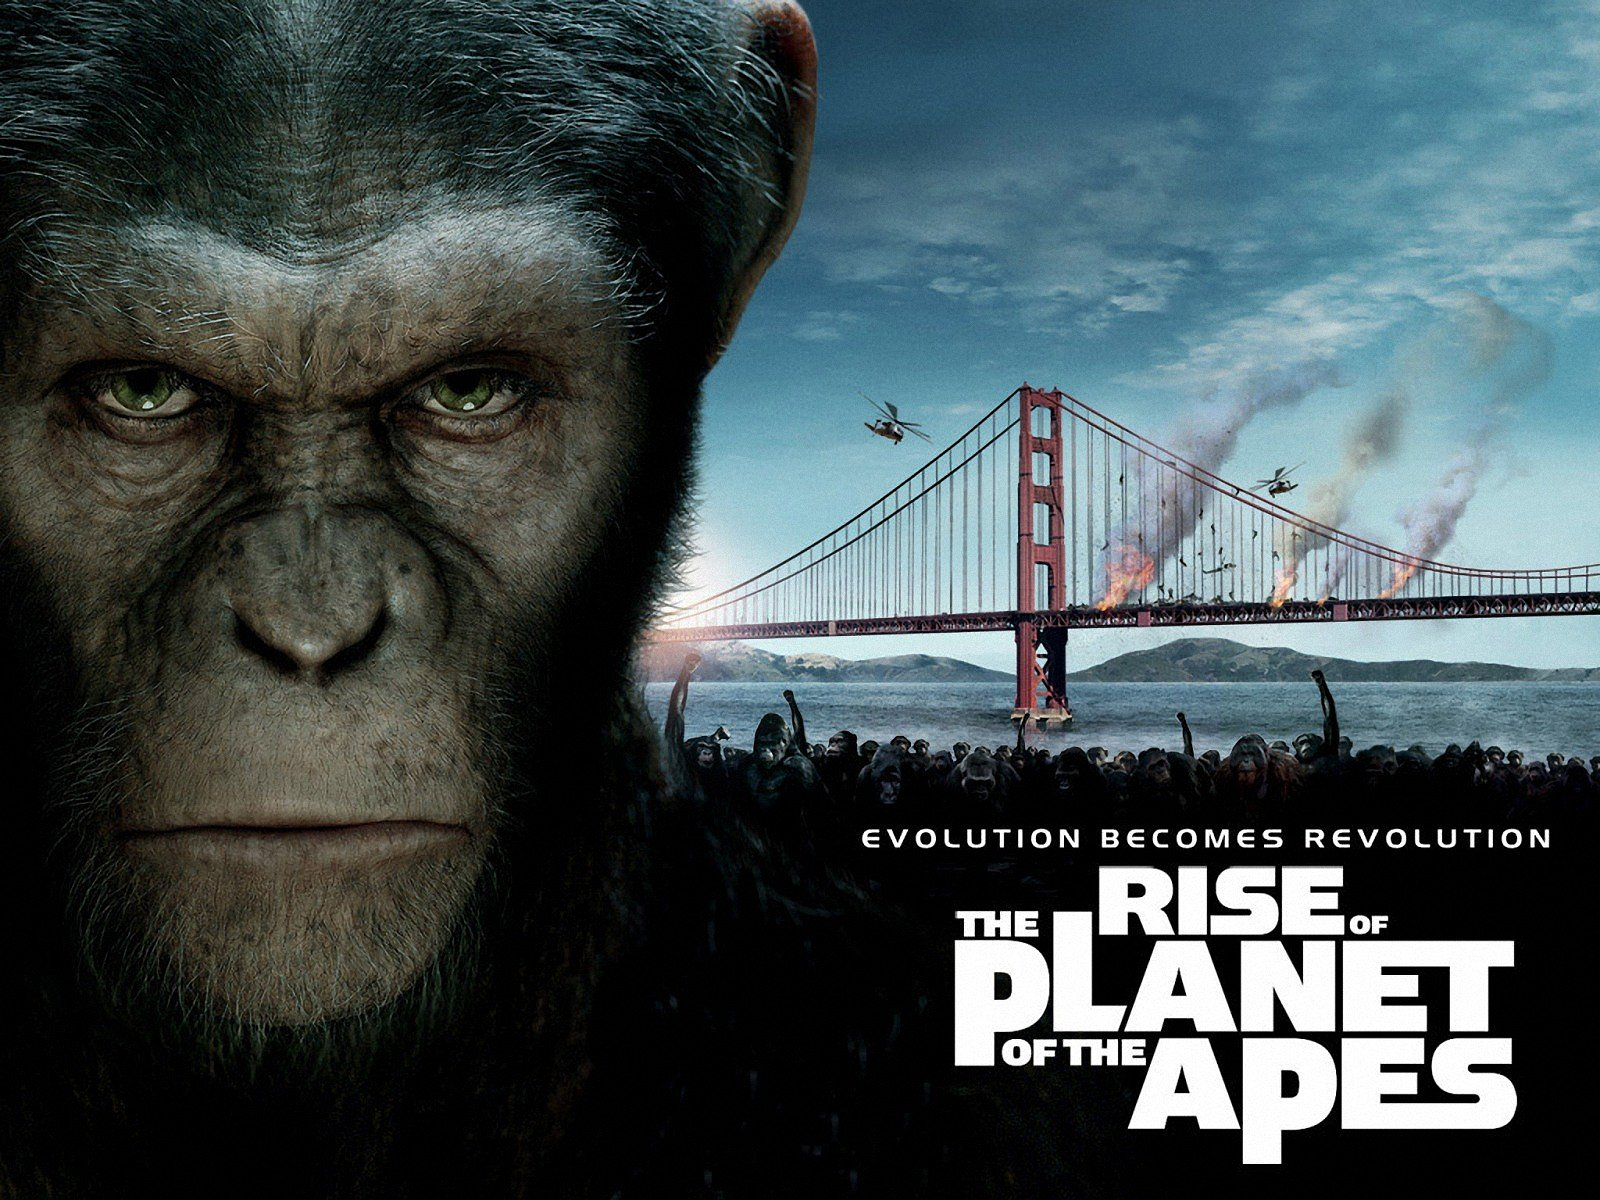 Rise of the Planet of the Apes Google image from http://www.dvd-ppt-slideshow.com/blog/wp-content/uploads/2011/08/rise-of-planet-of-the-apes-4.jpg